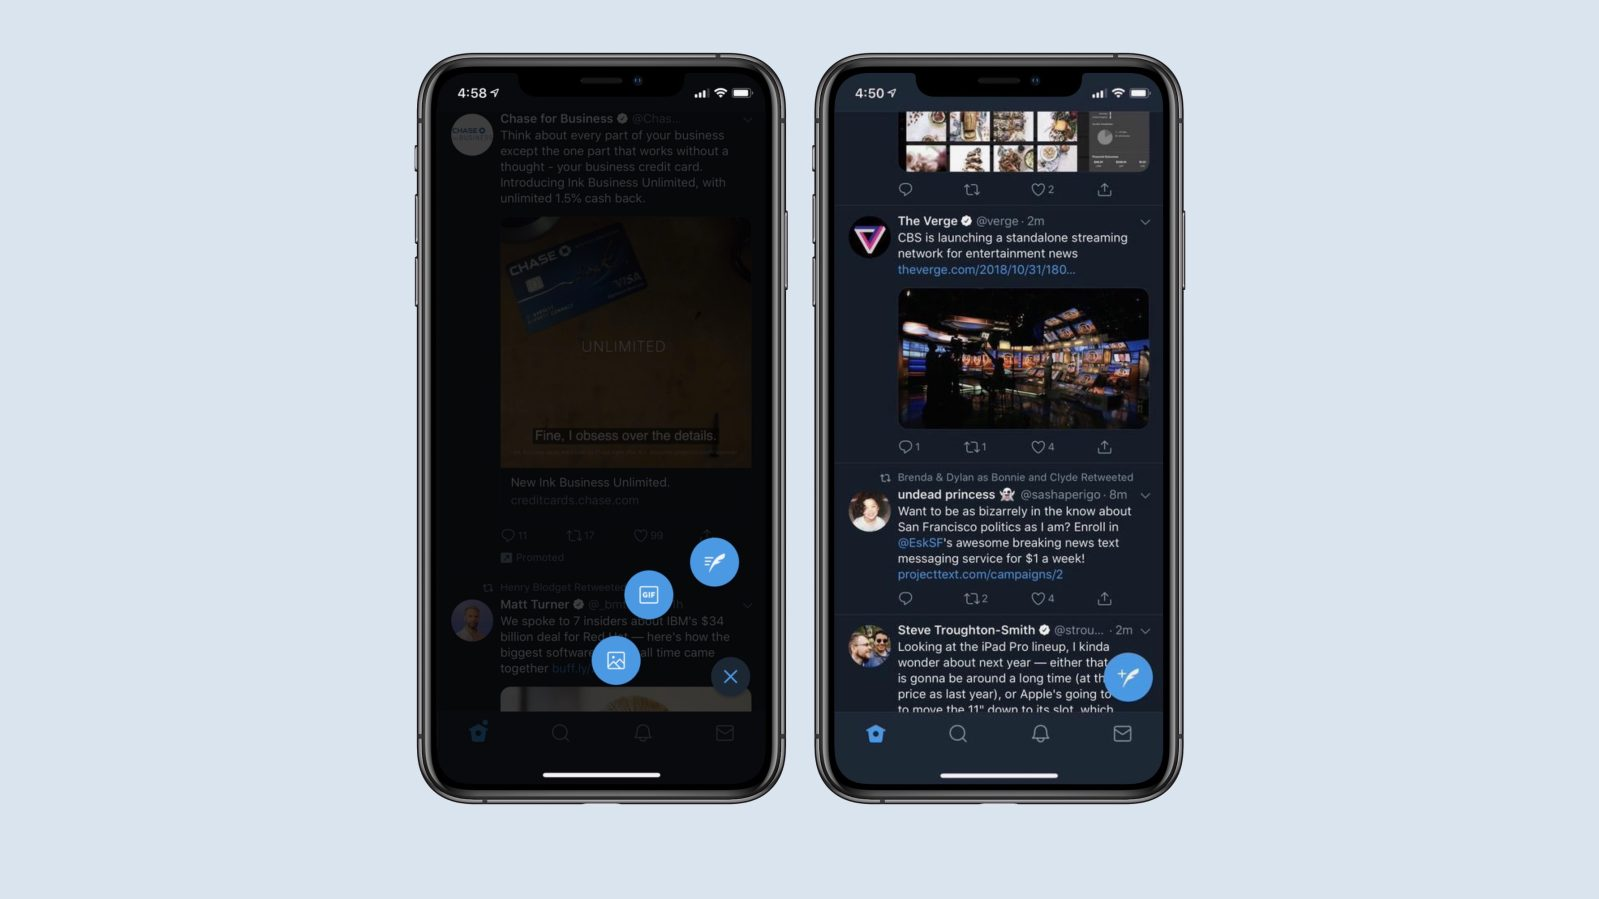 Android Search Date 2018 11 01 Samsung Galaxy C9 Pro Ram 6gb Batre Monster Garansi Resmi Update Twitter Also Now Says That Starting Today Some Users Will See A New Option To View The Latest Tweets First We Previously Reported On This Change